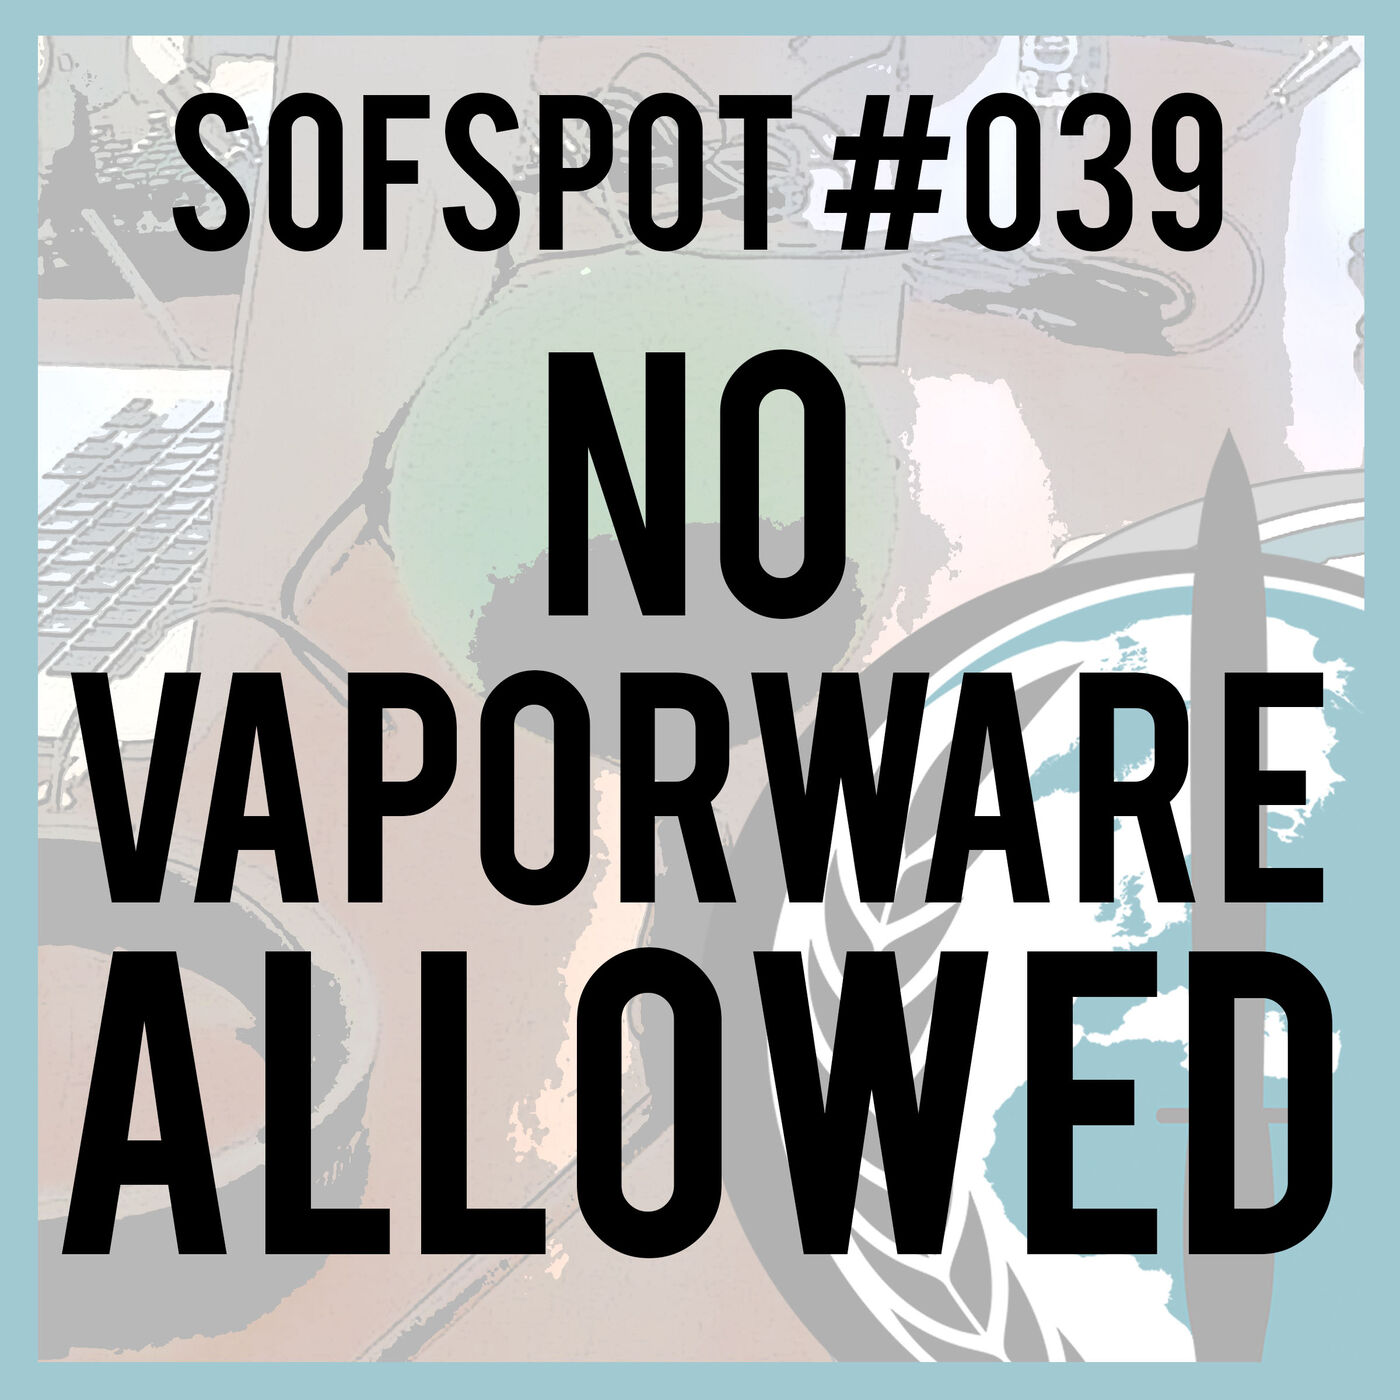 No Vaporware Allowed